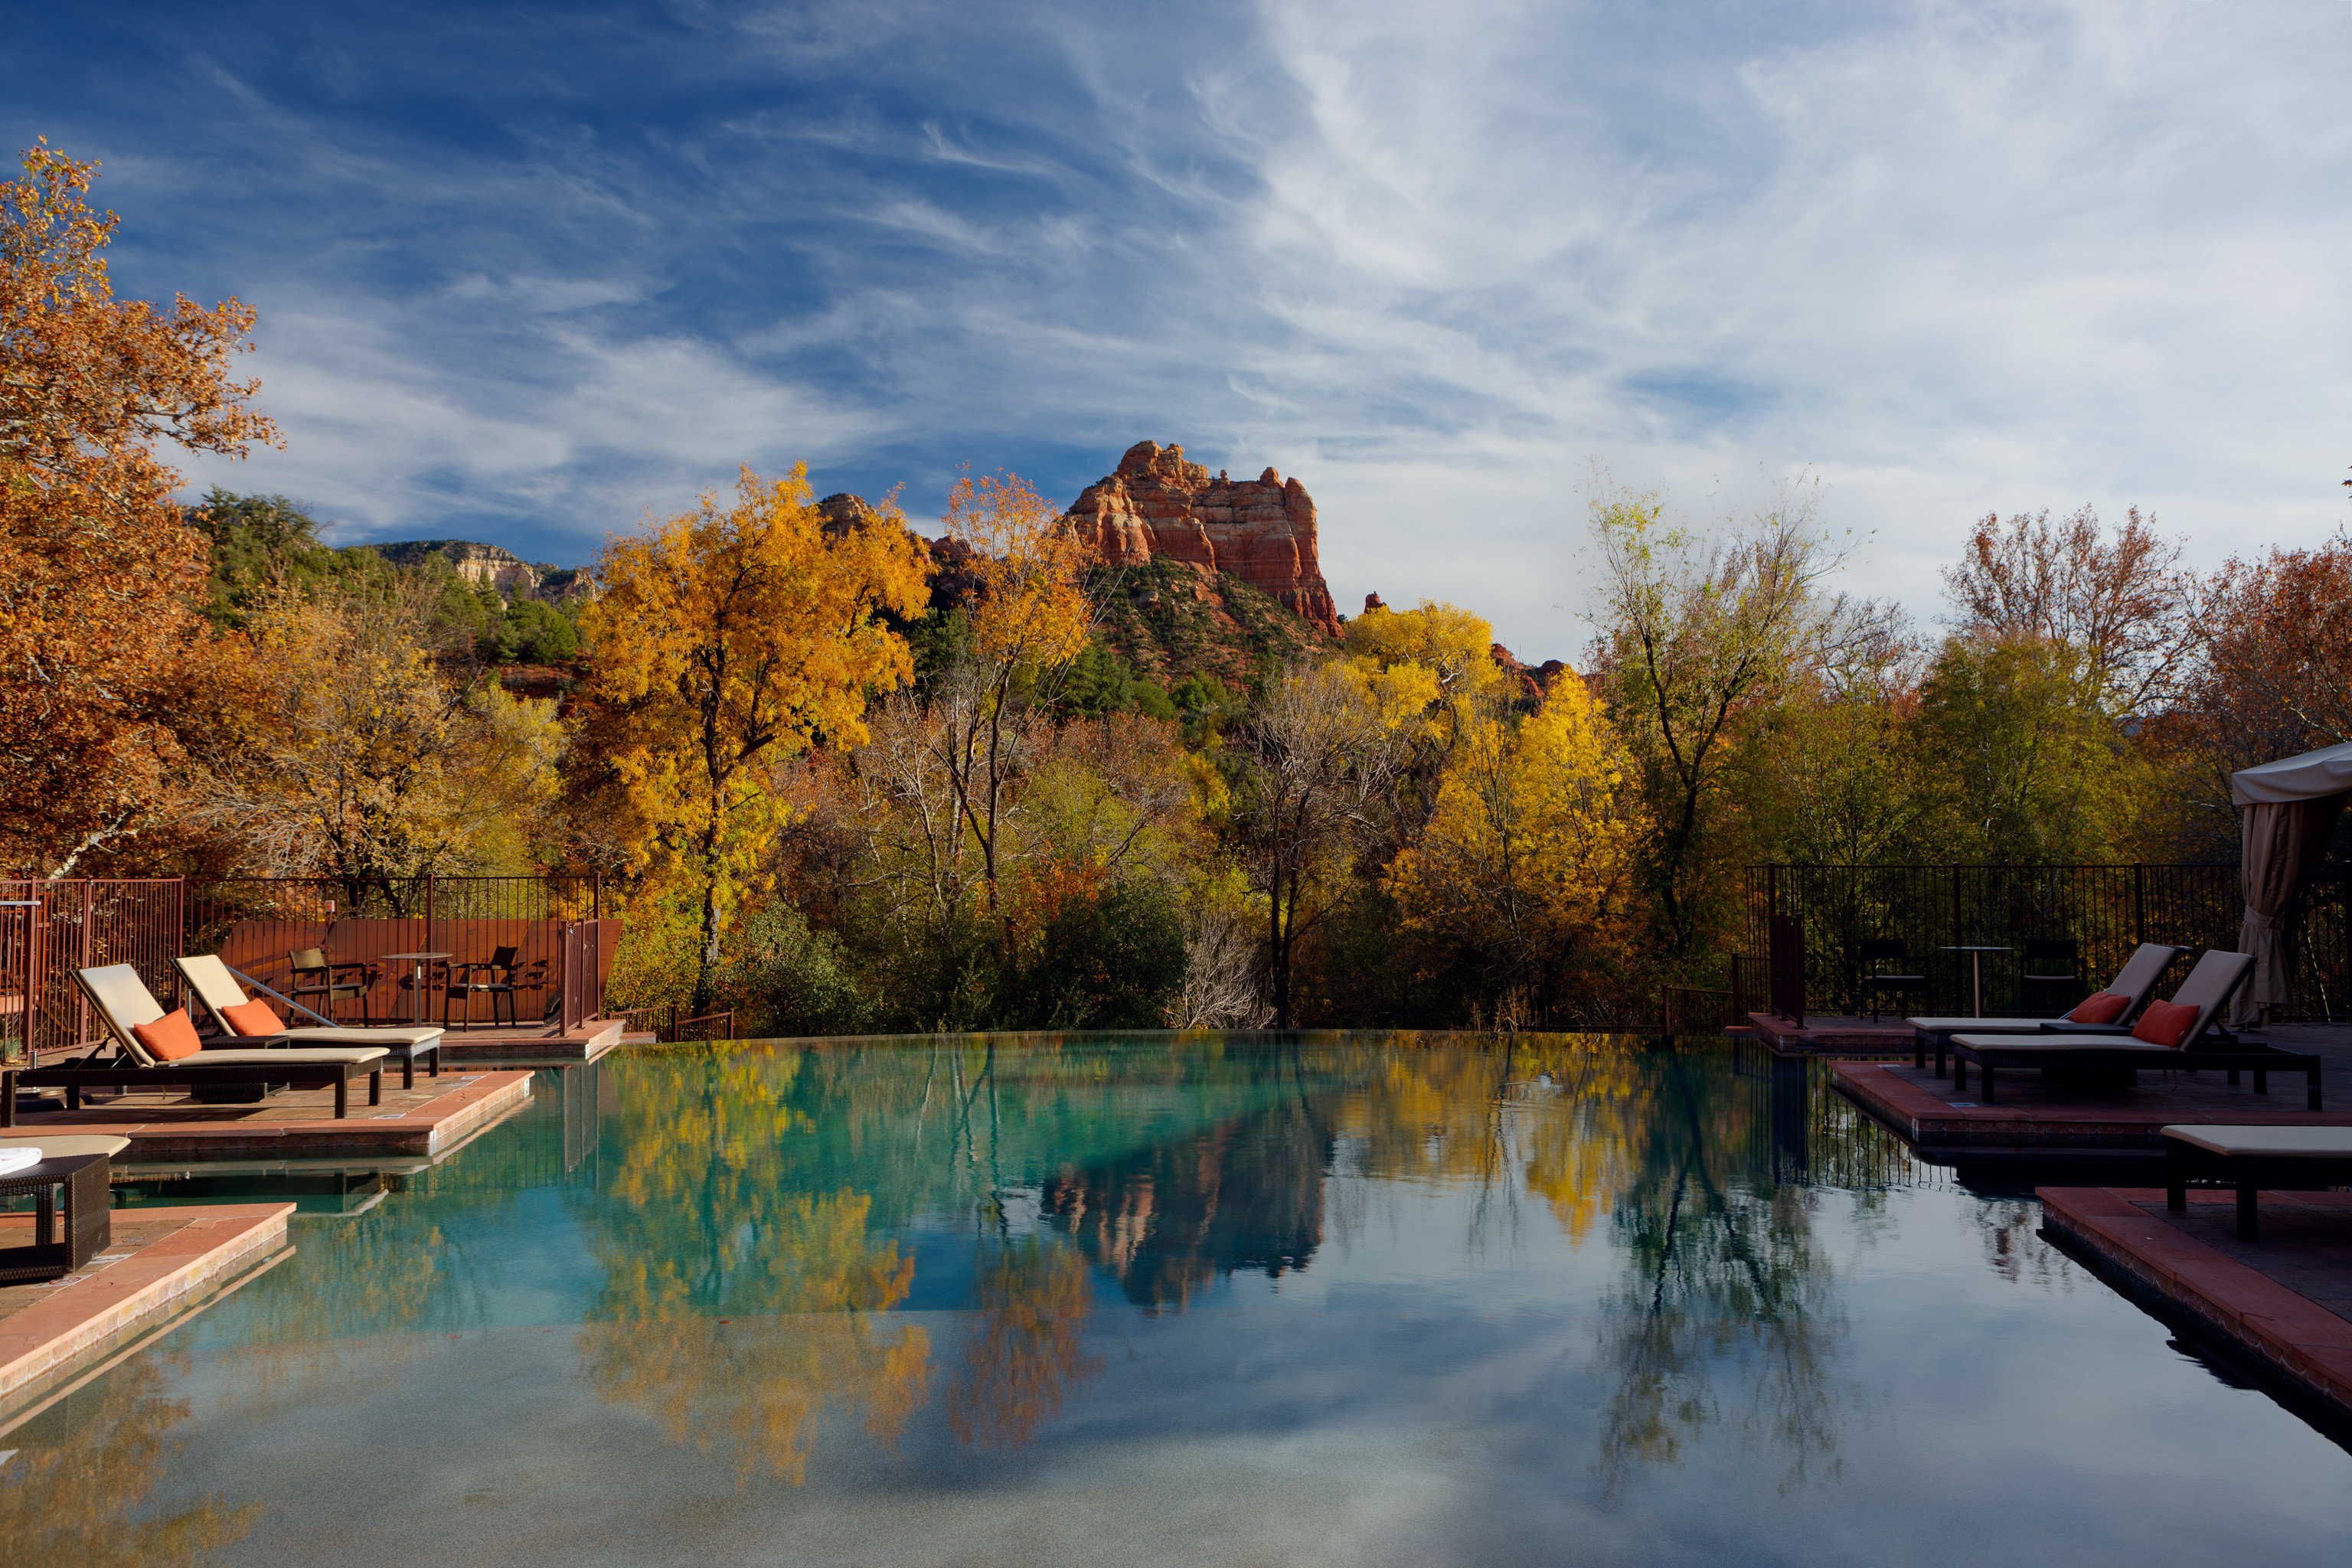 Boutique Modern Mountains Outdoors Pool Scenic views tree sky River water season autumn morning Lake evening landscape leaf waterway park traveling dusk pond Forest wooded